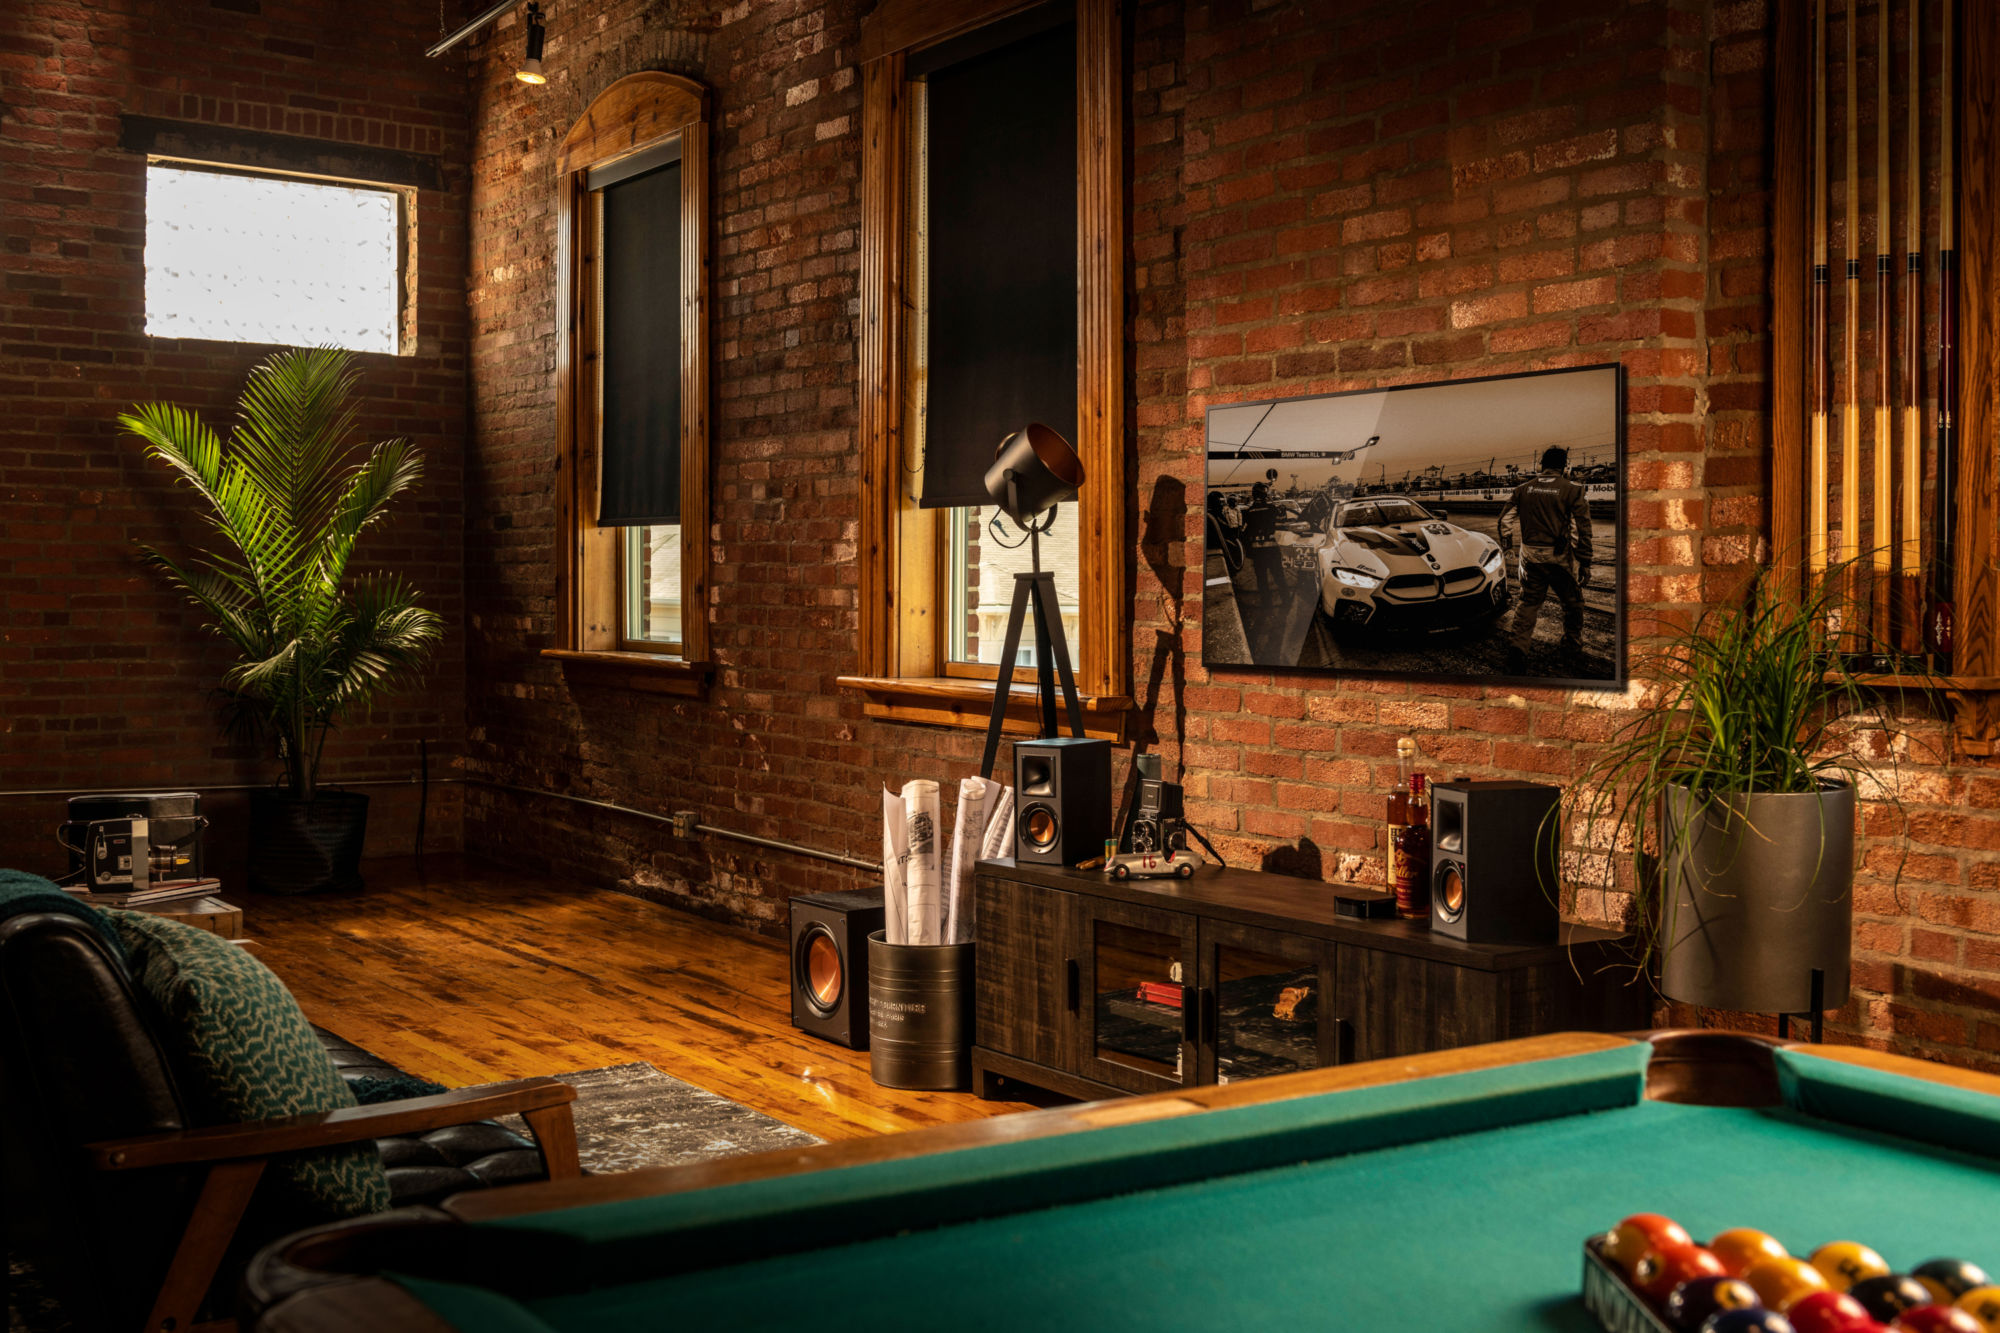 Klipsch Reference Powered Speakers in a living room with a pool table